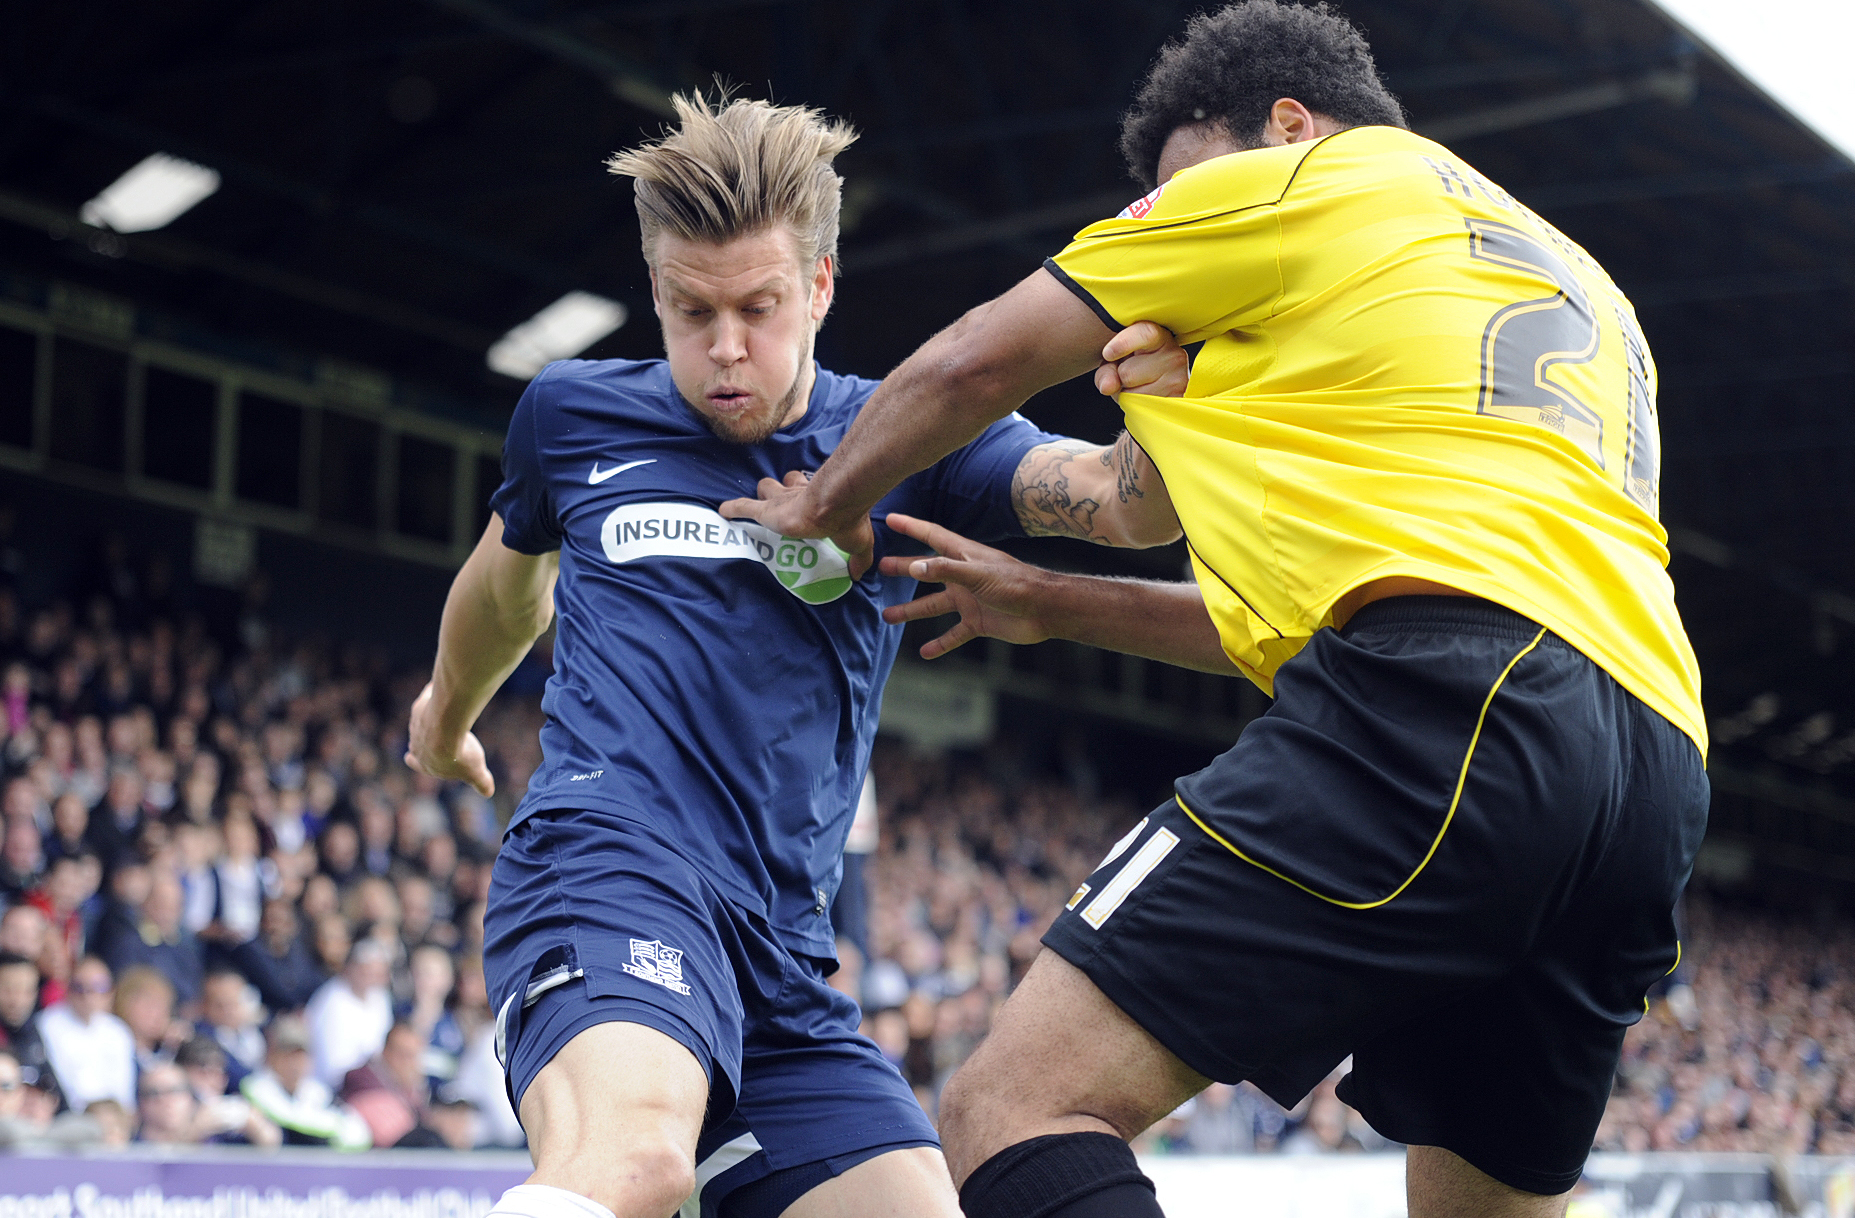 Kevan Hurst in action against Burton Albion on Saturday